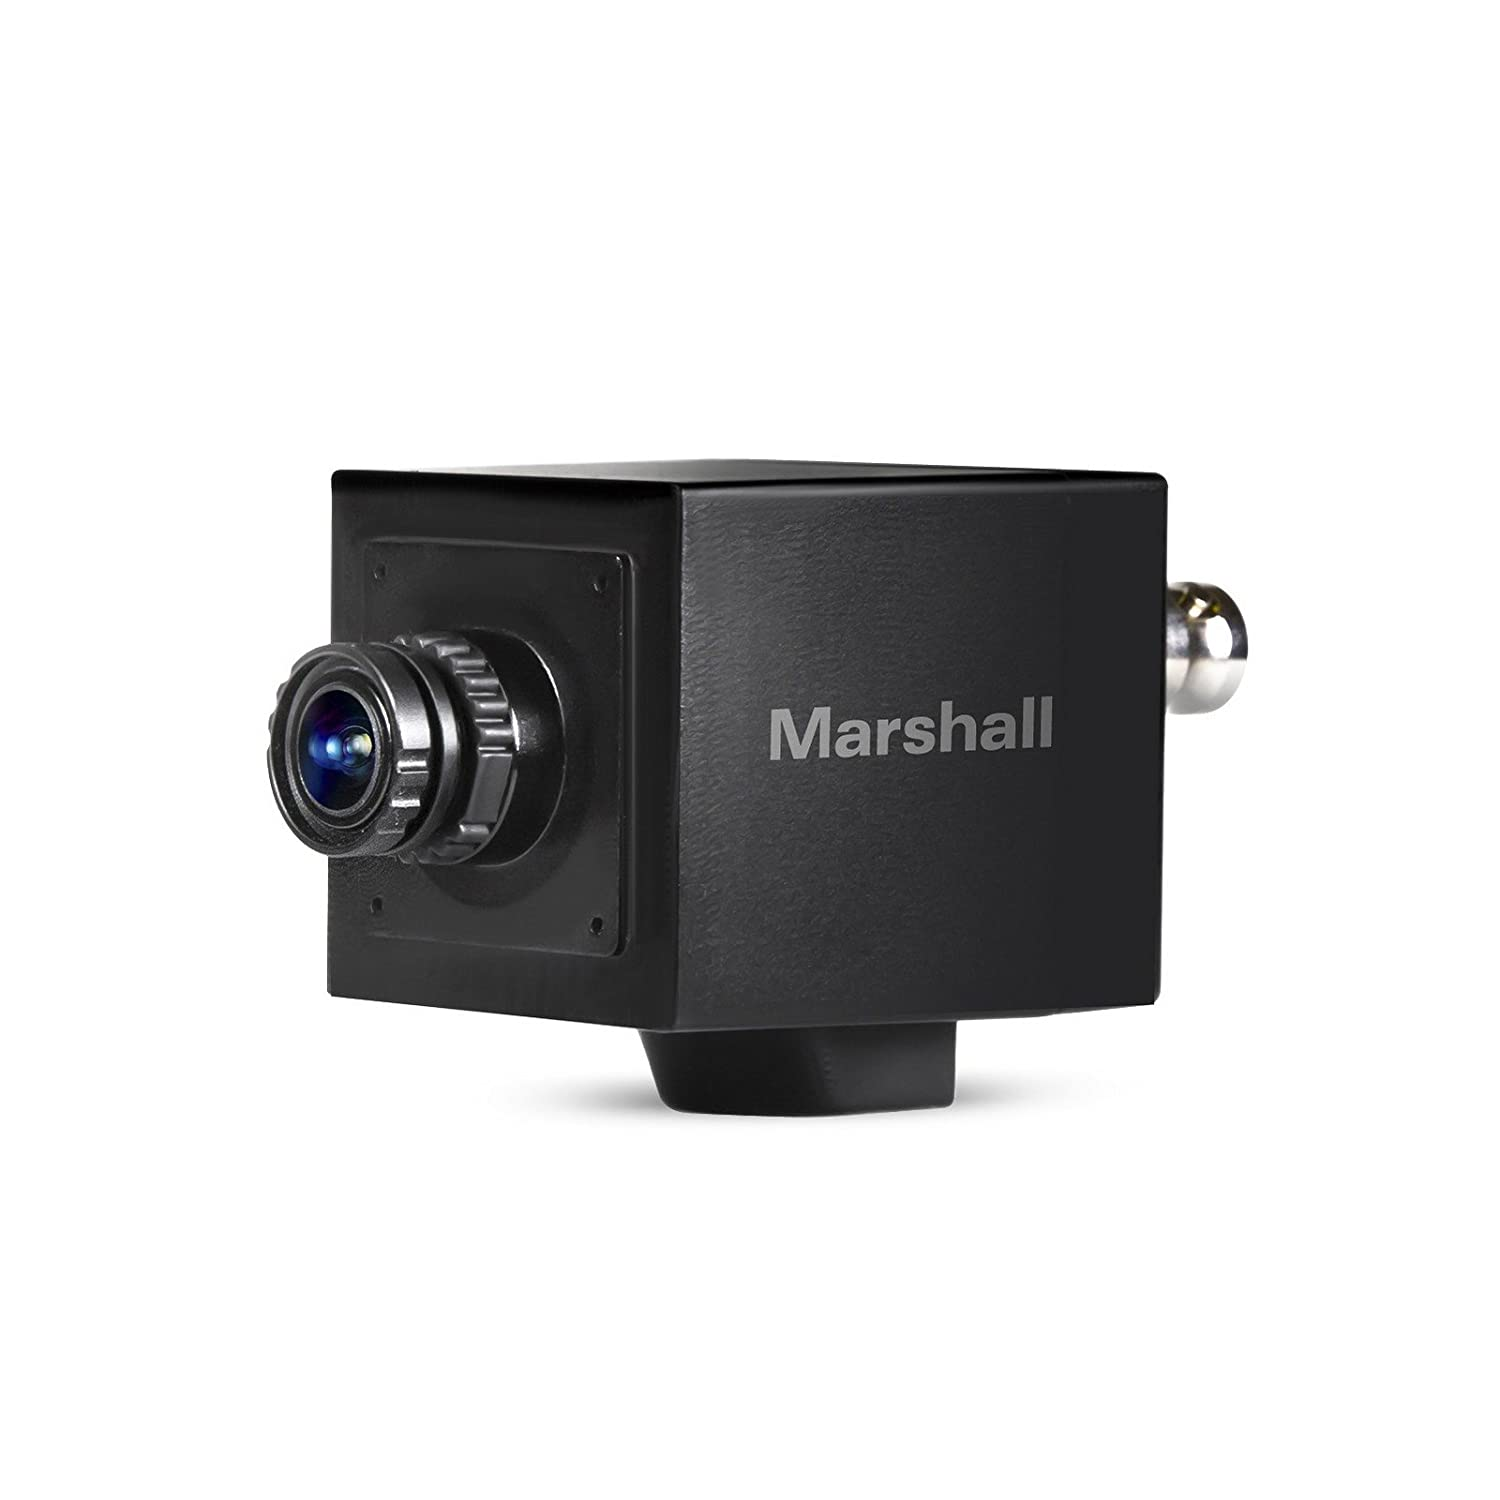 Marshall Electronics cv505-mb | Interchangeable 3.7 MMレンズHD 3 G SDI 1080p 59 FPS HDMI入力コンパクトブロードキャストカメラ   B01BLUCO5G